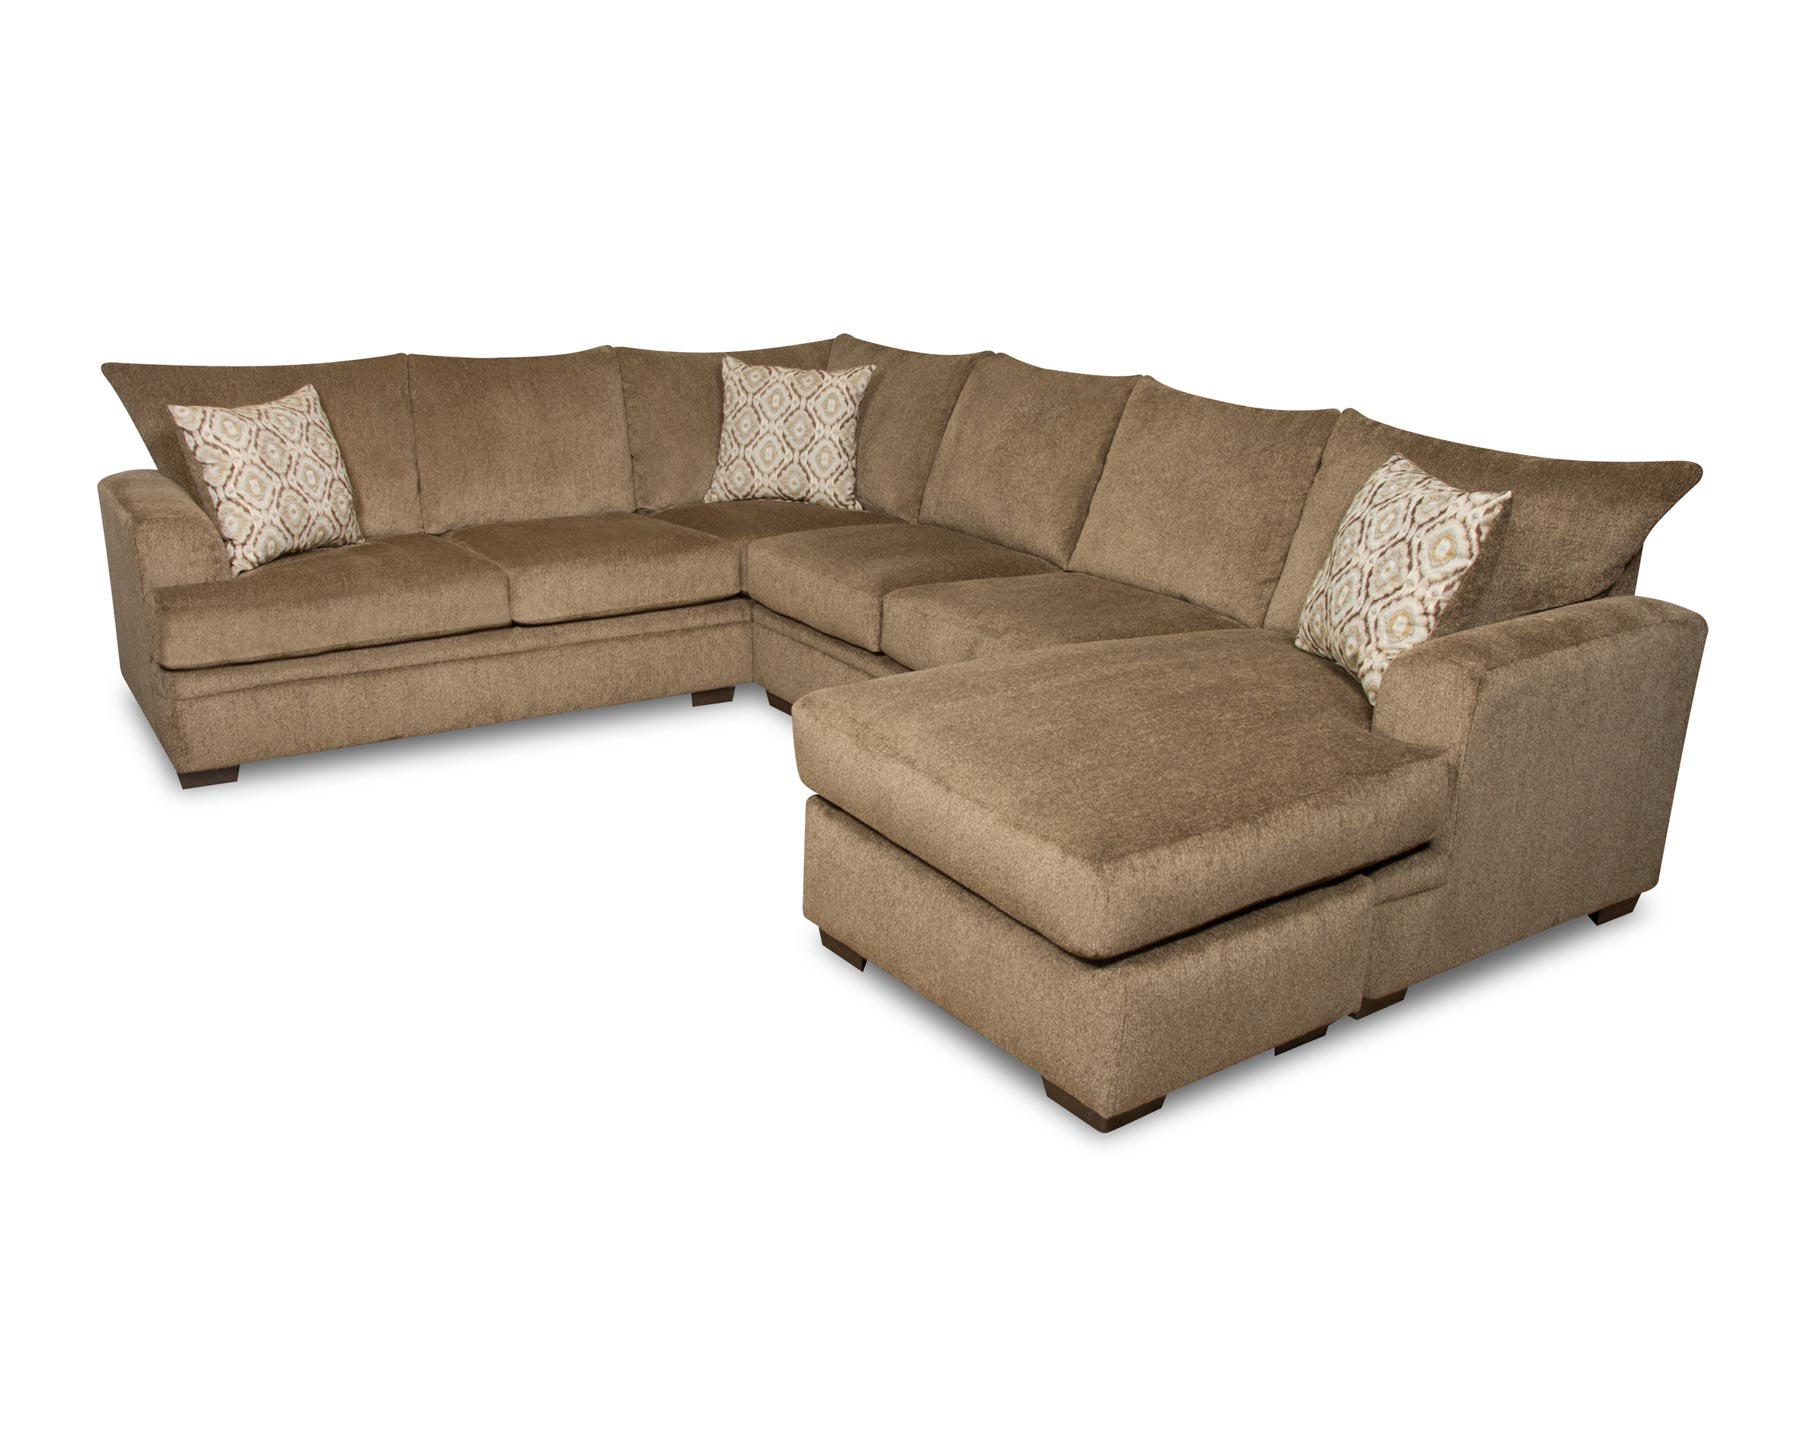 Cornell sectional sofa with right side chaise gonzalez for Sectional sofa with right side chaise